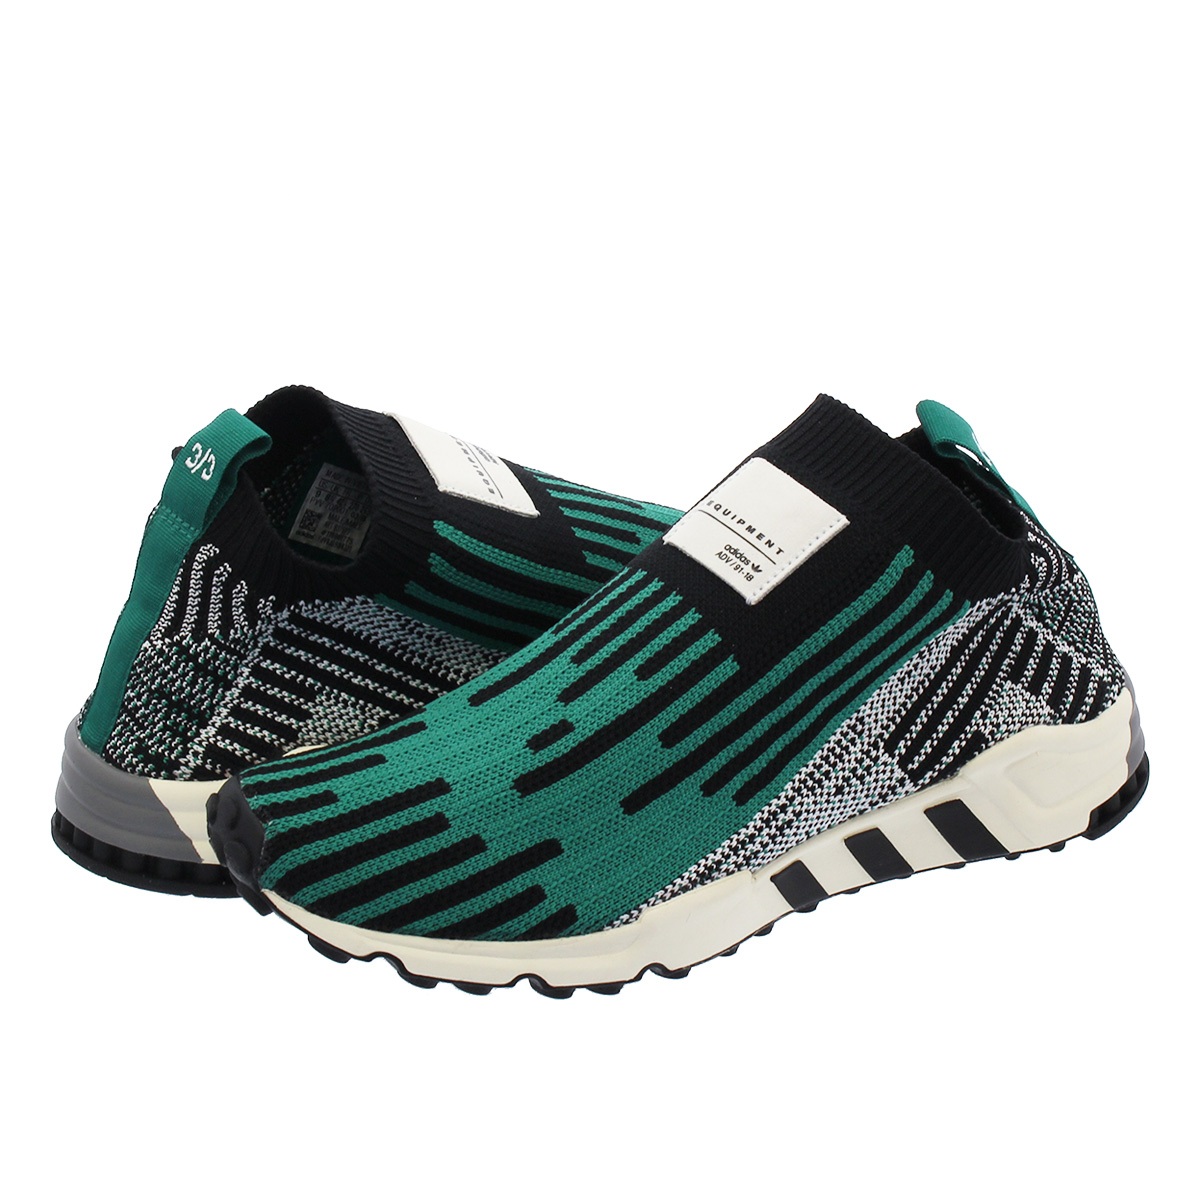 on sale 31805 5085e adidas EQT SUPPORT PK 3 3 Adidas EQT support prime knit 3 3 CORE BLACK SUB  GREEN RUNNING WHITE b37523